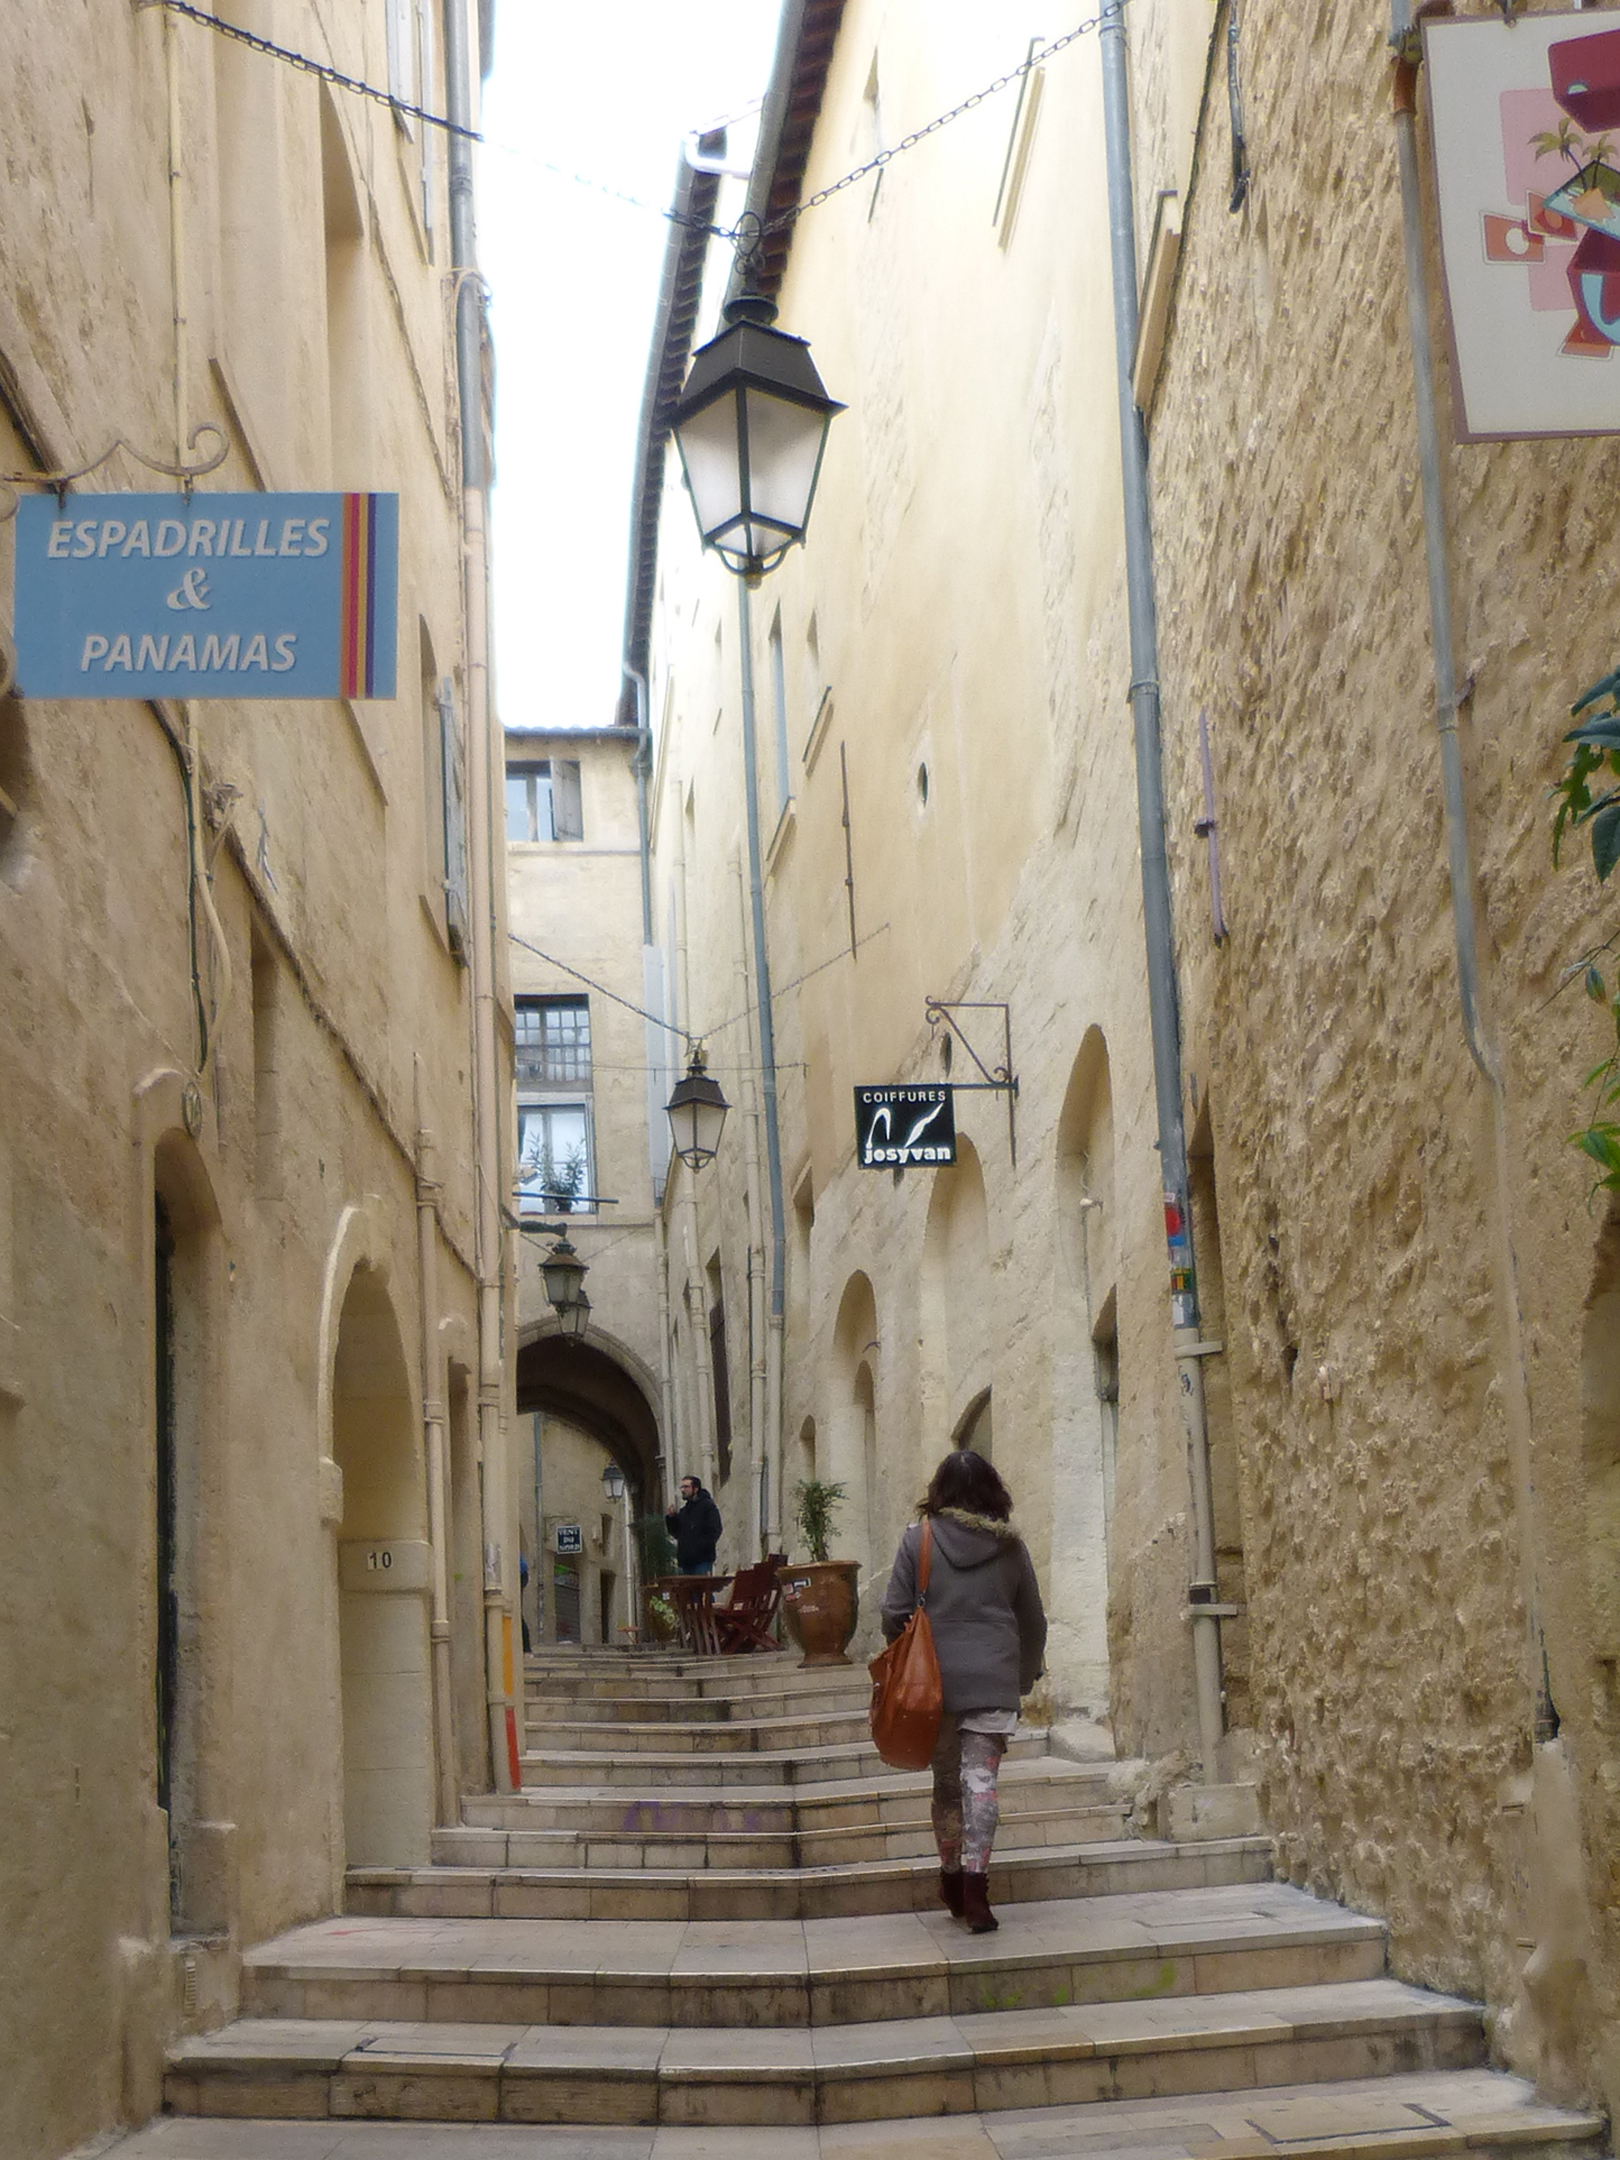 Montpellier: A Surprising City | In My Suitcase: Little Known Places to Discover